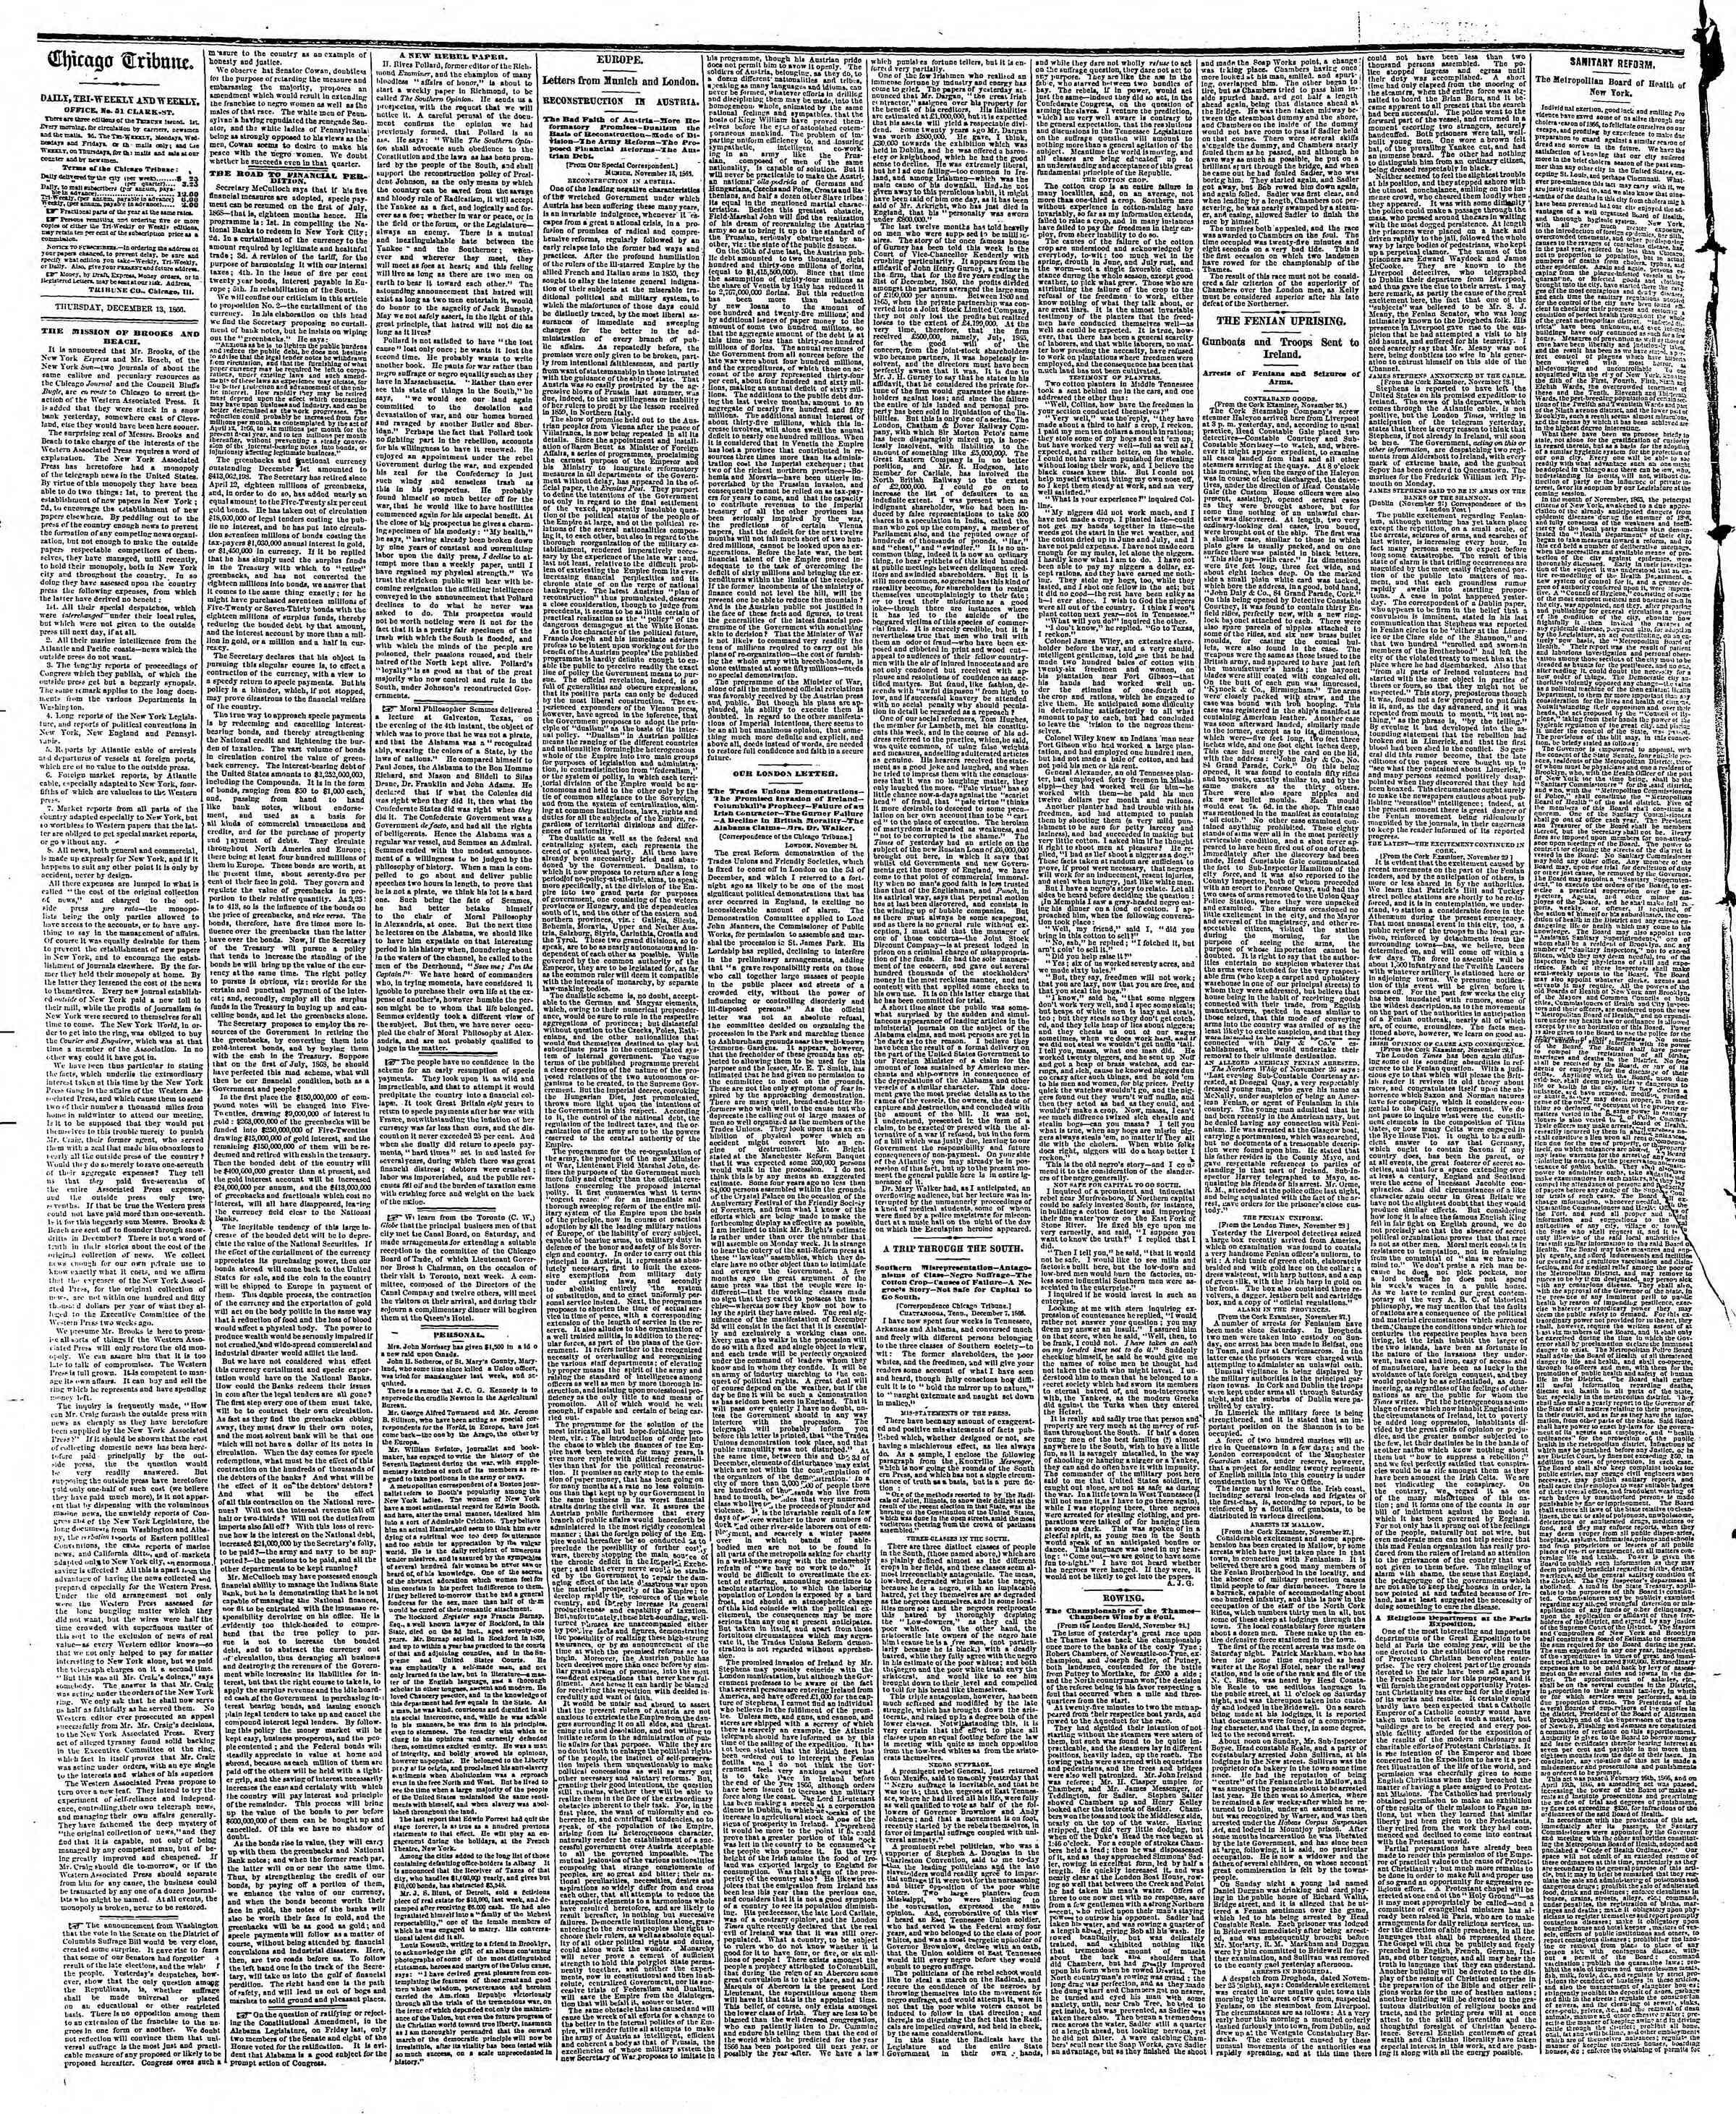 Newspaper of The Chicago Tribune dated December 13, 1866 Page 2